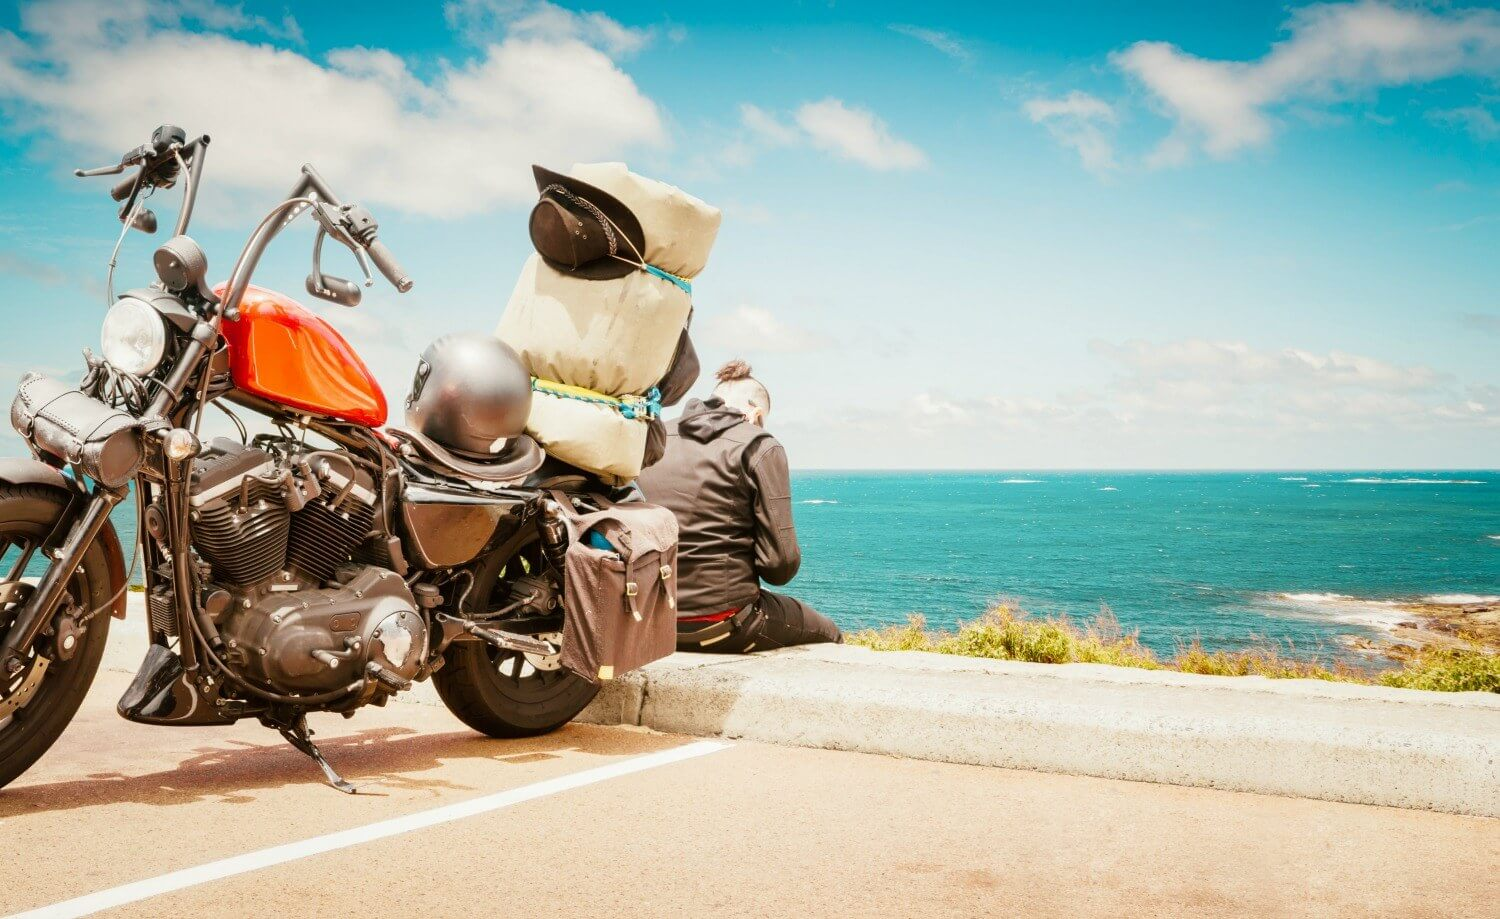 motorcycle trip camping